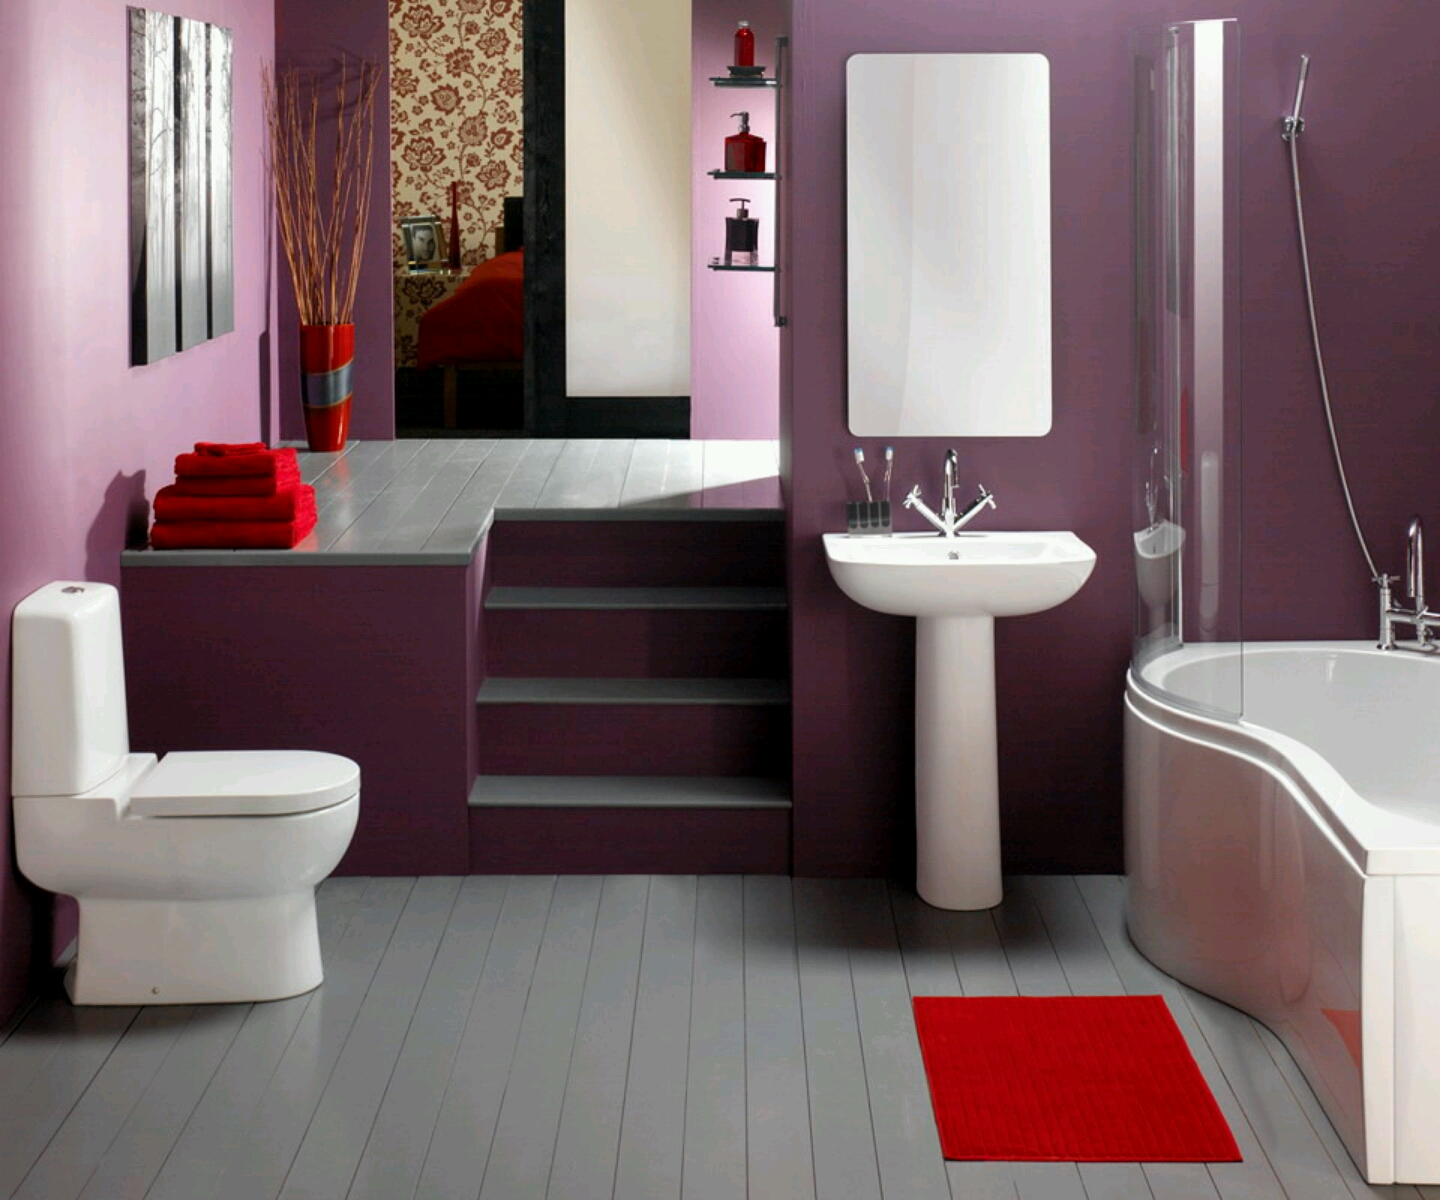 New home designs latest luxury modern bathrooms designs for Contemporary bathroom design